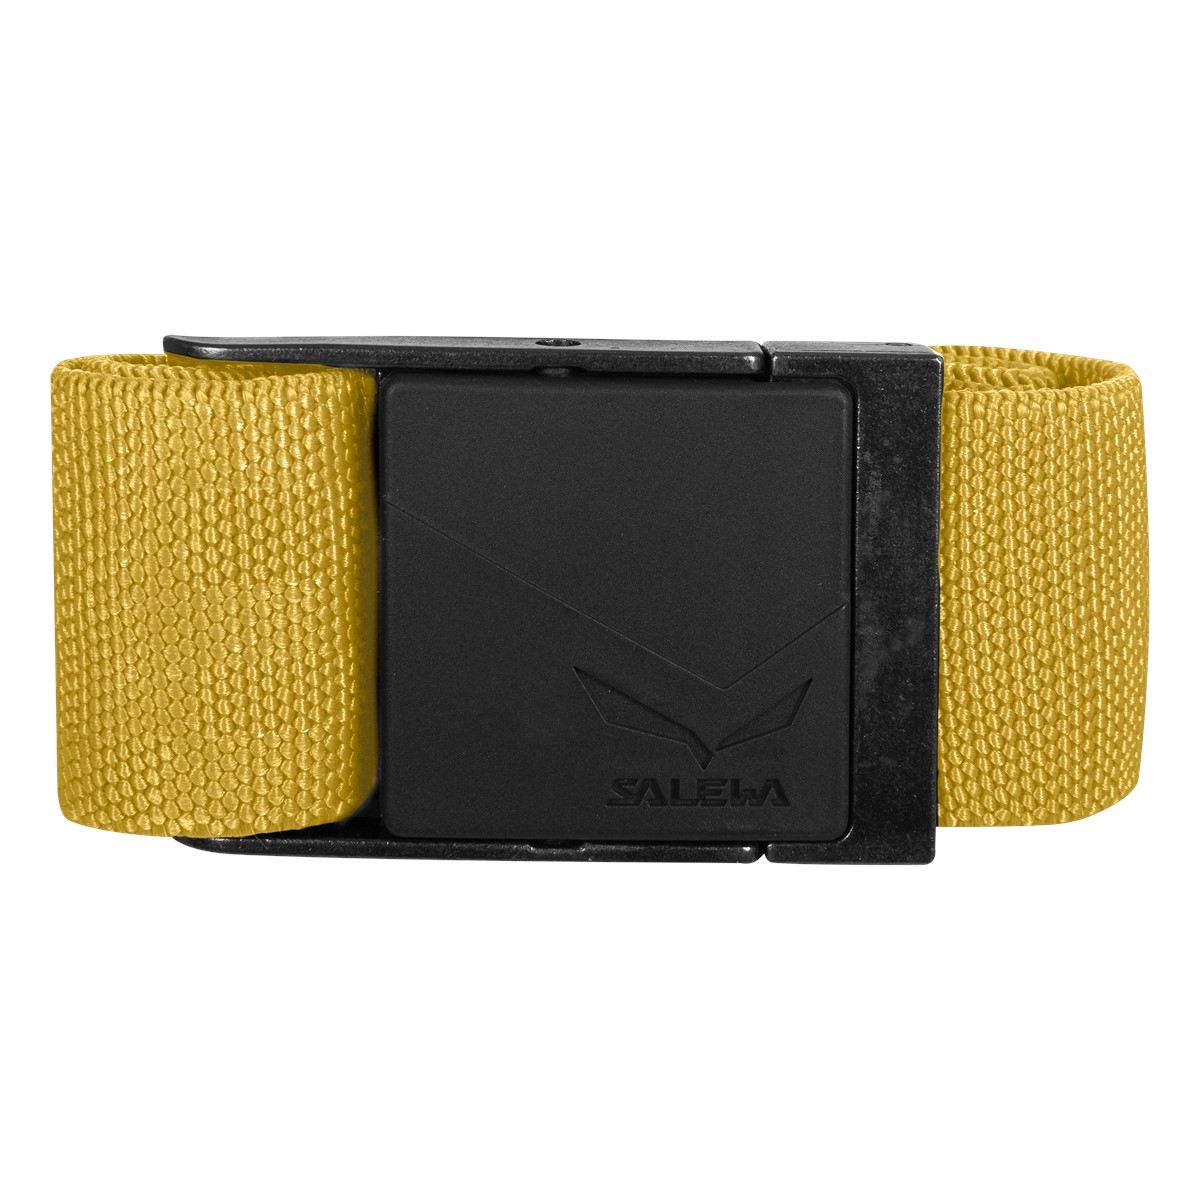 Salewa RAINBOW BELT - nugget gold,UNI - NUGGET GOLD - Gr. UNI SLW-00-0000024812-g